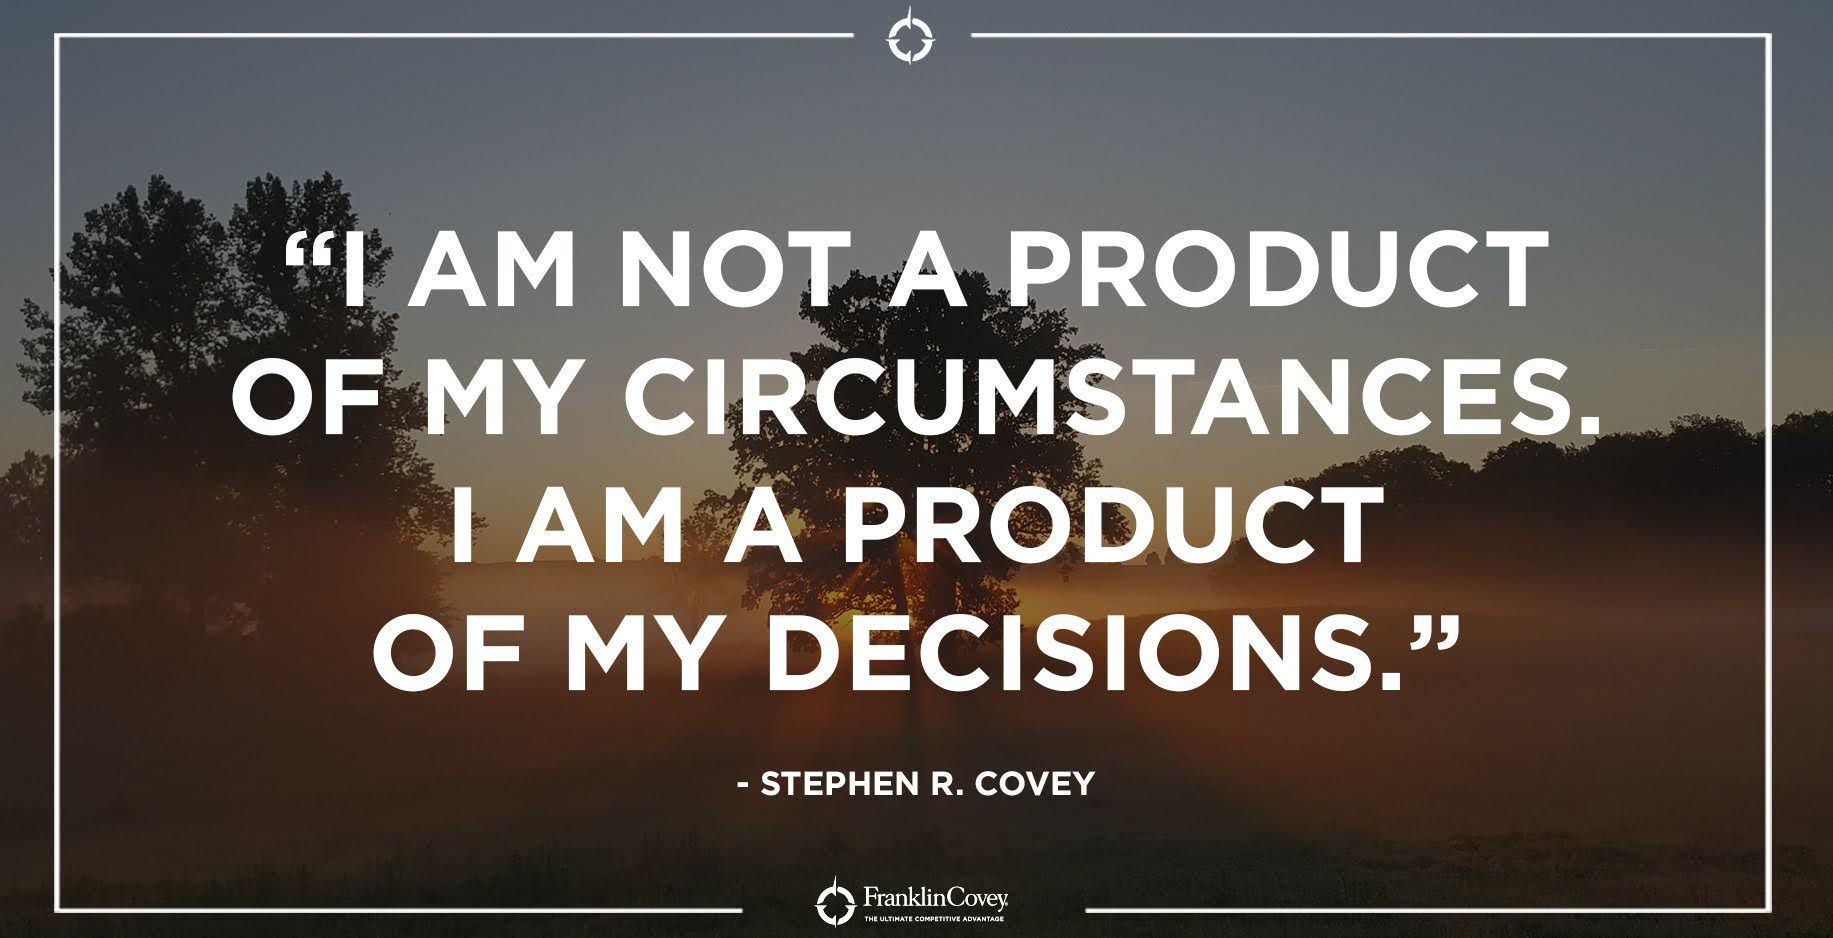 Source: Stephen R. Covey Twitter feed